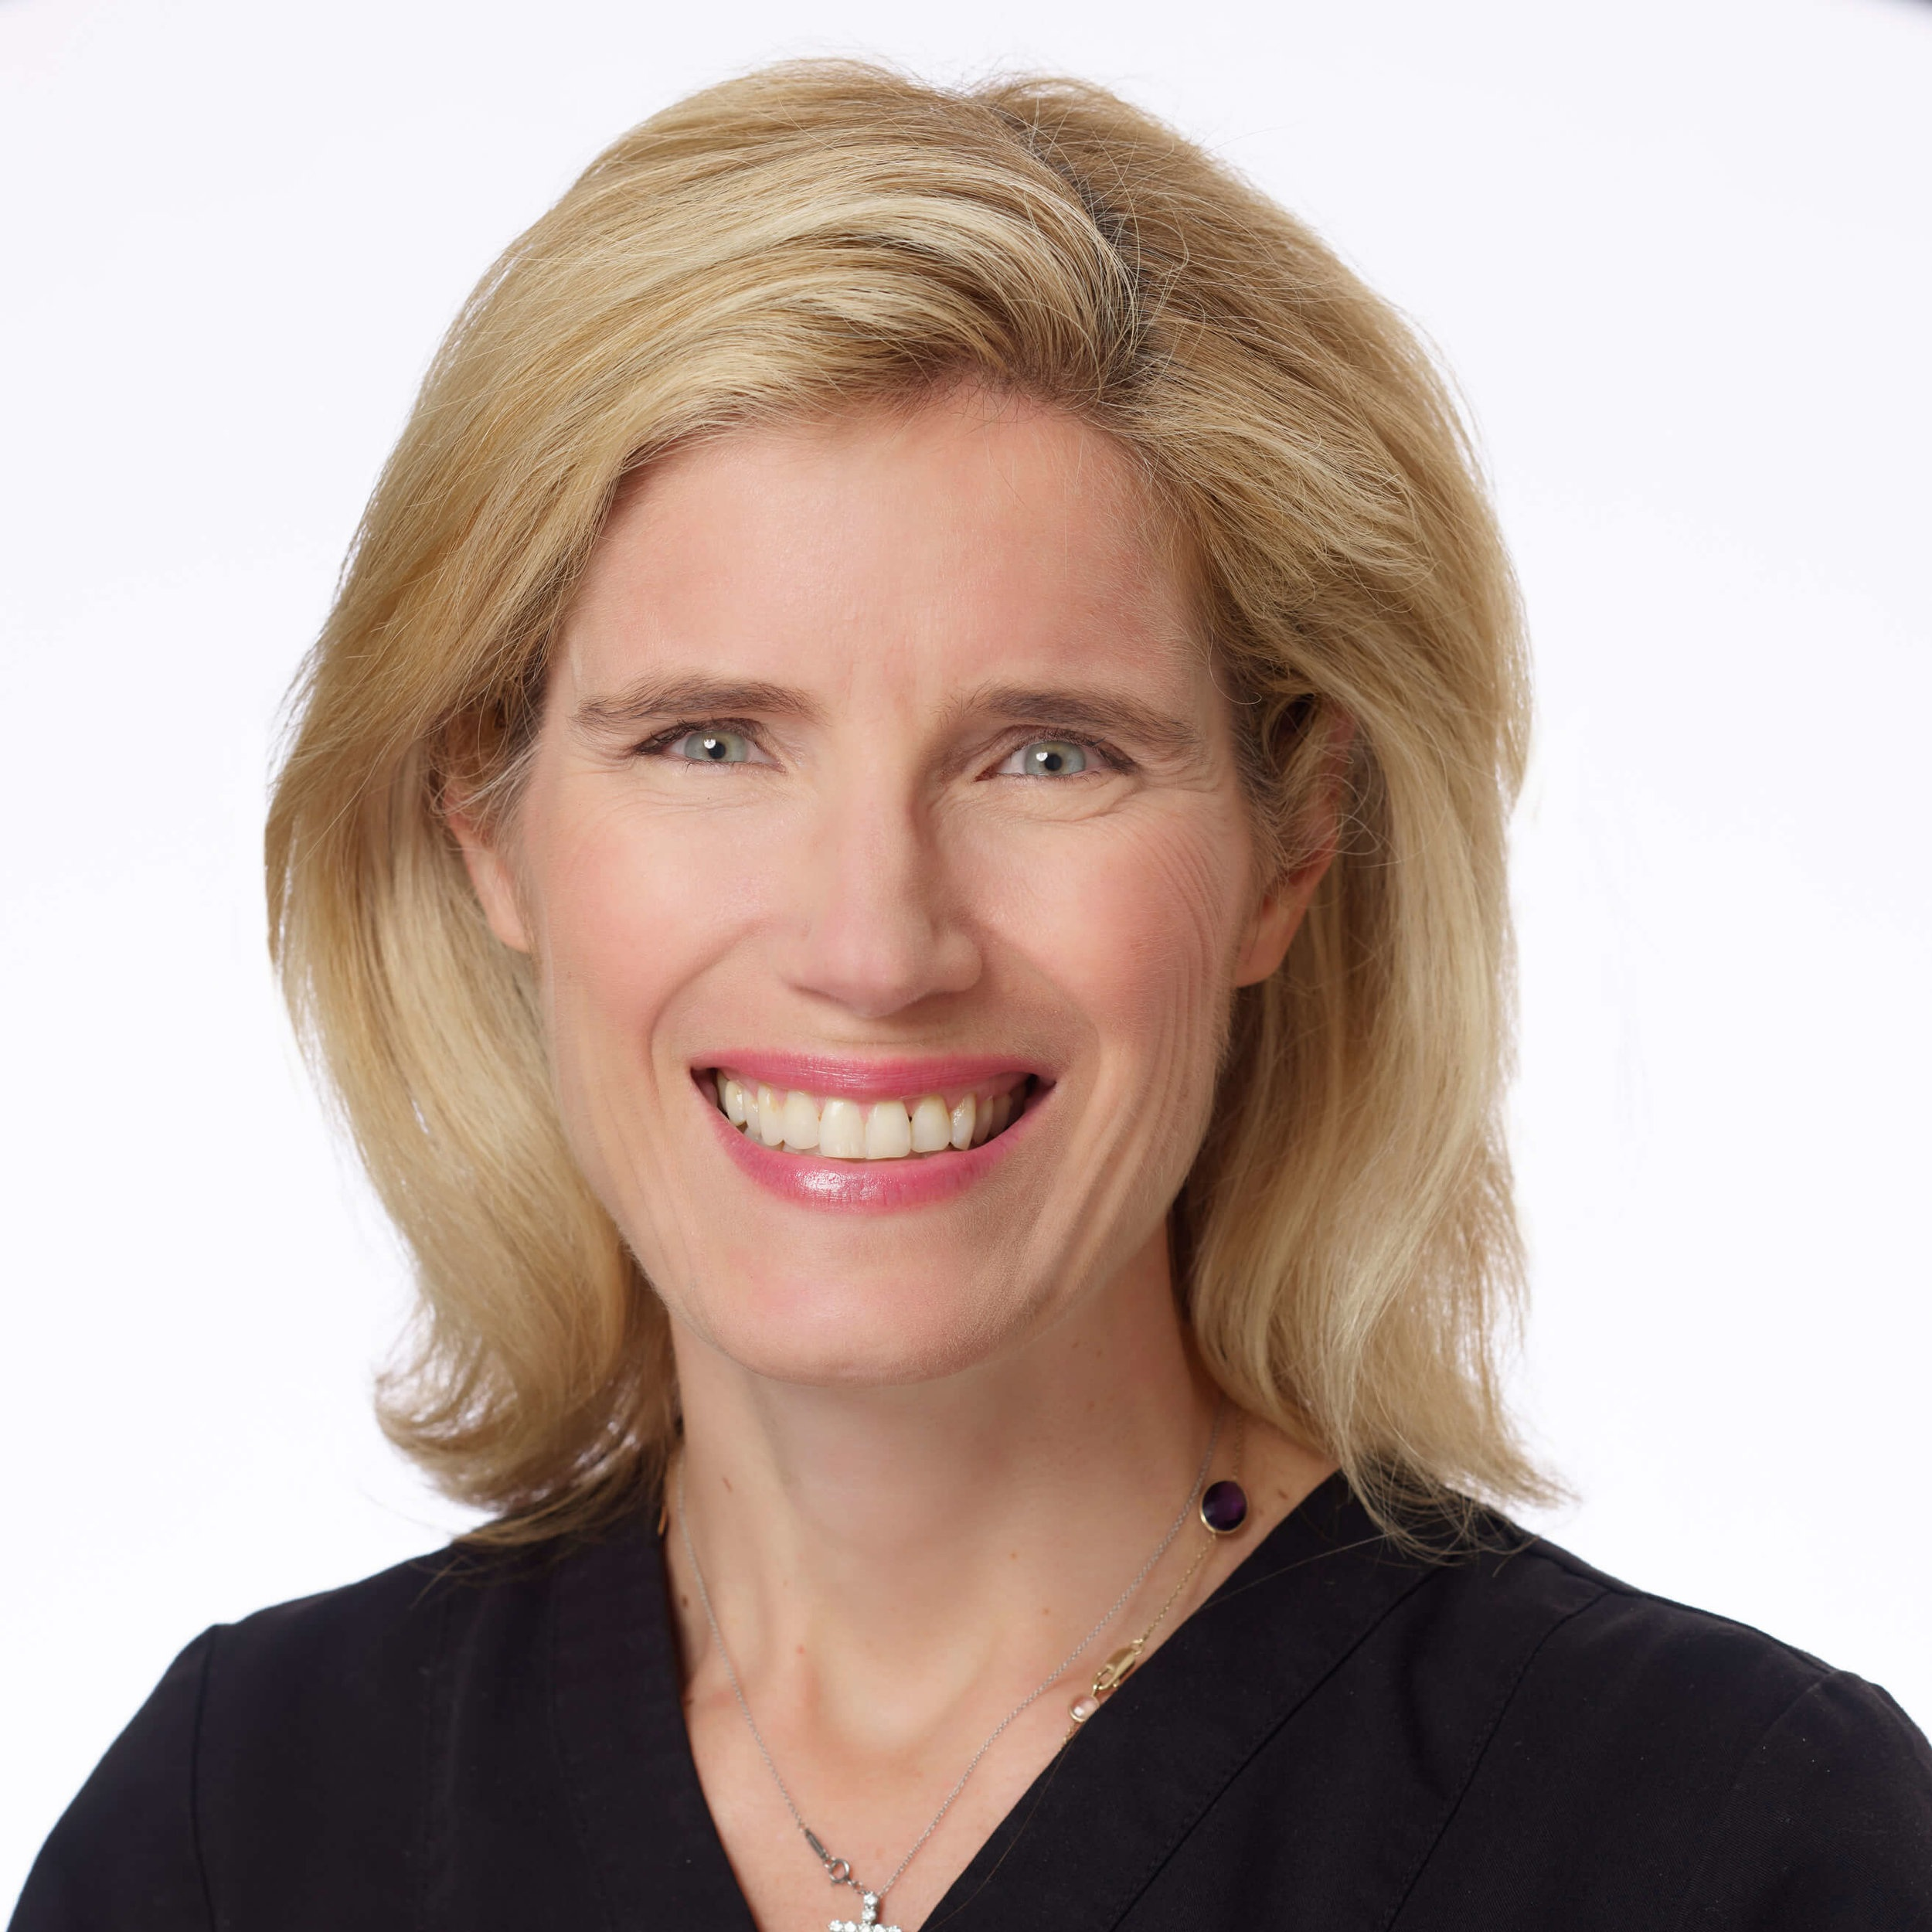 Kristine Gedroic, MD - Founder and Director